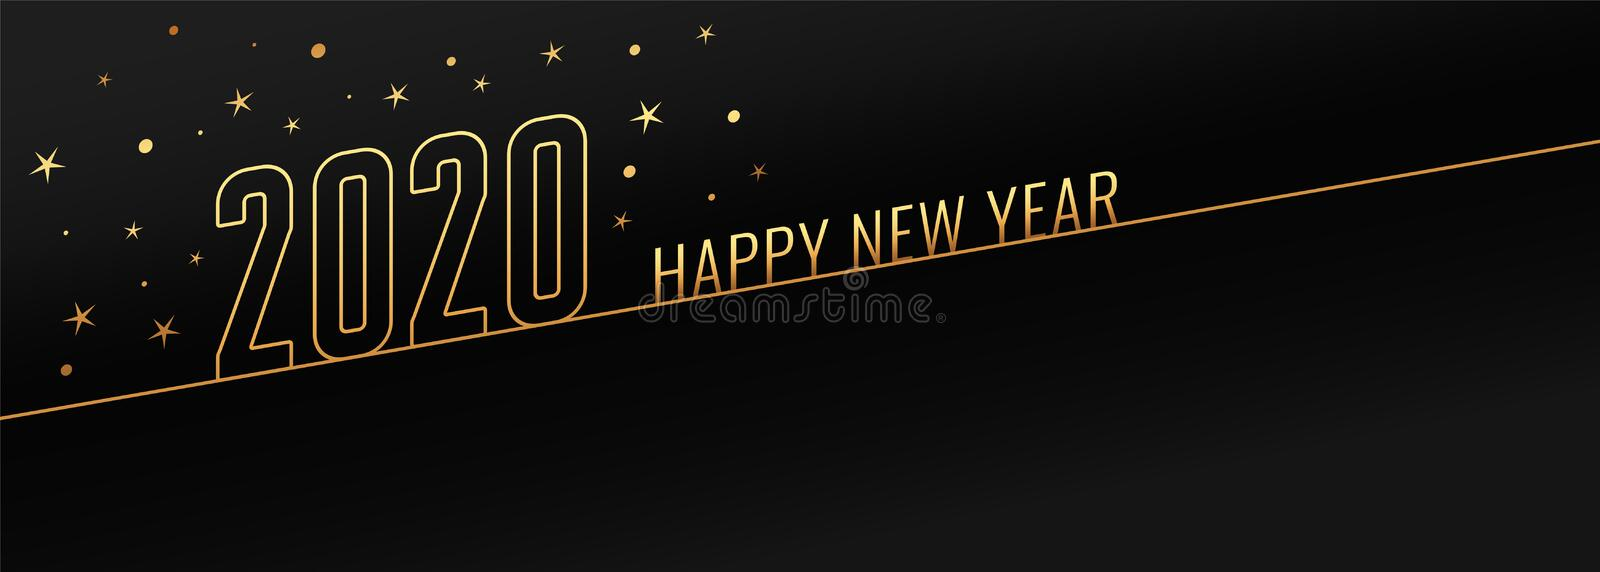 Happy new year 2020 black and gold banner design stock illustration